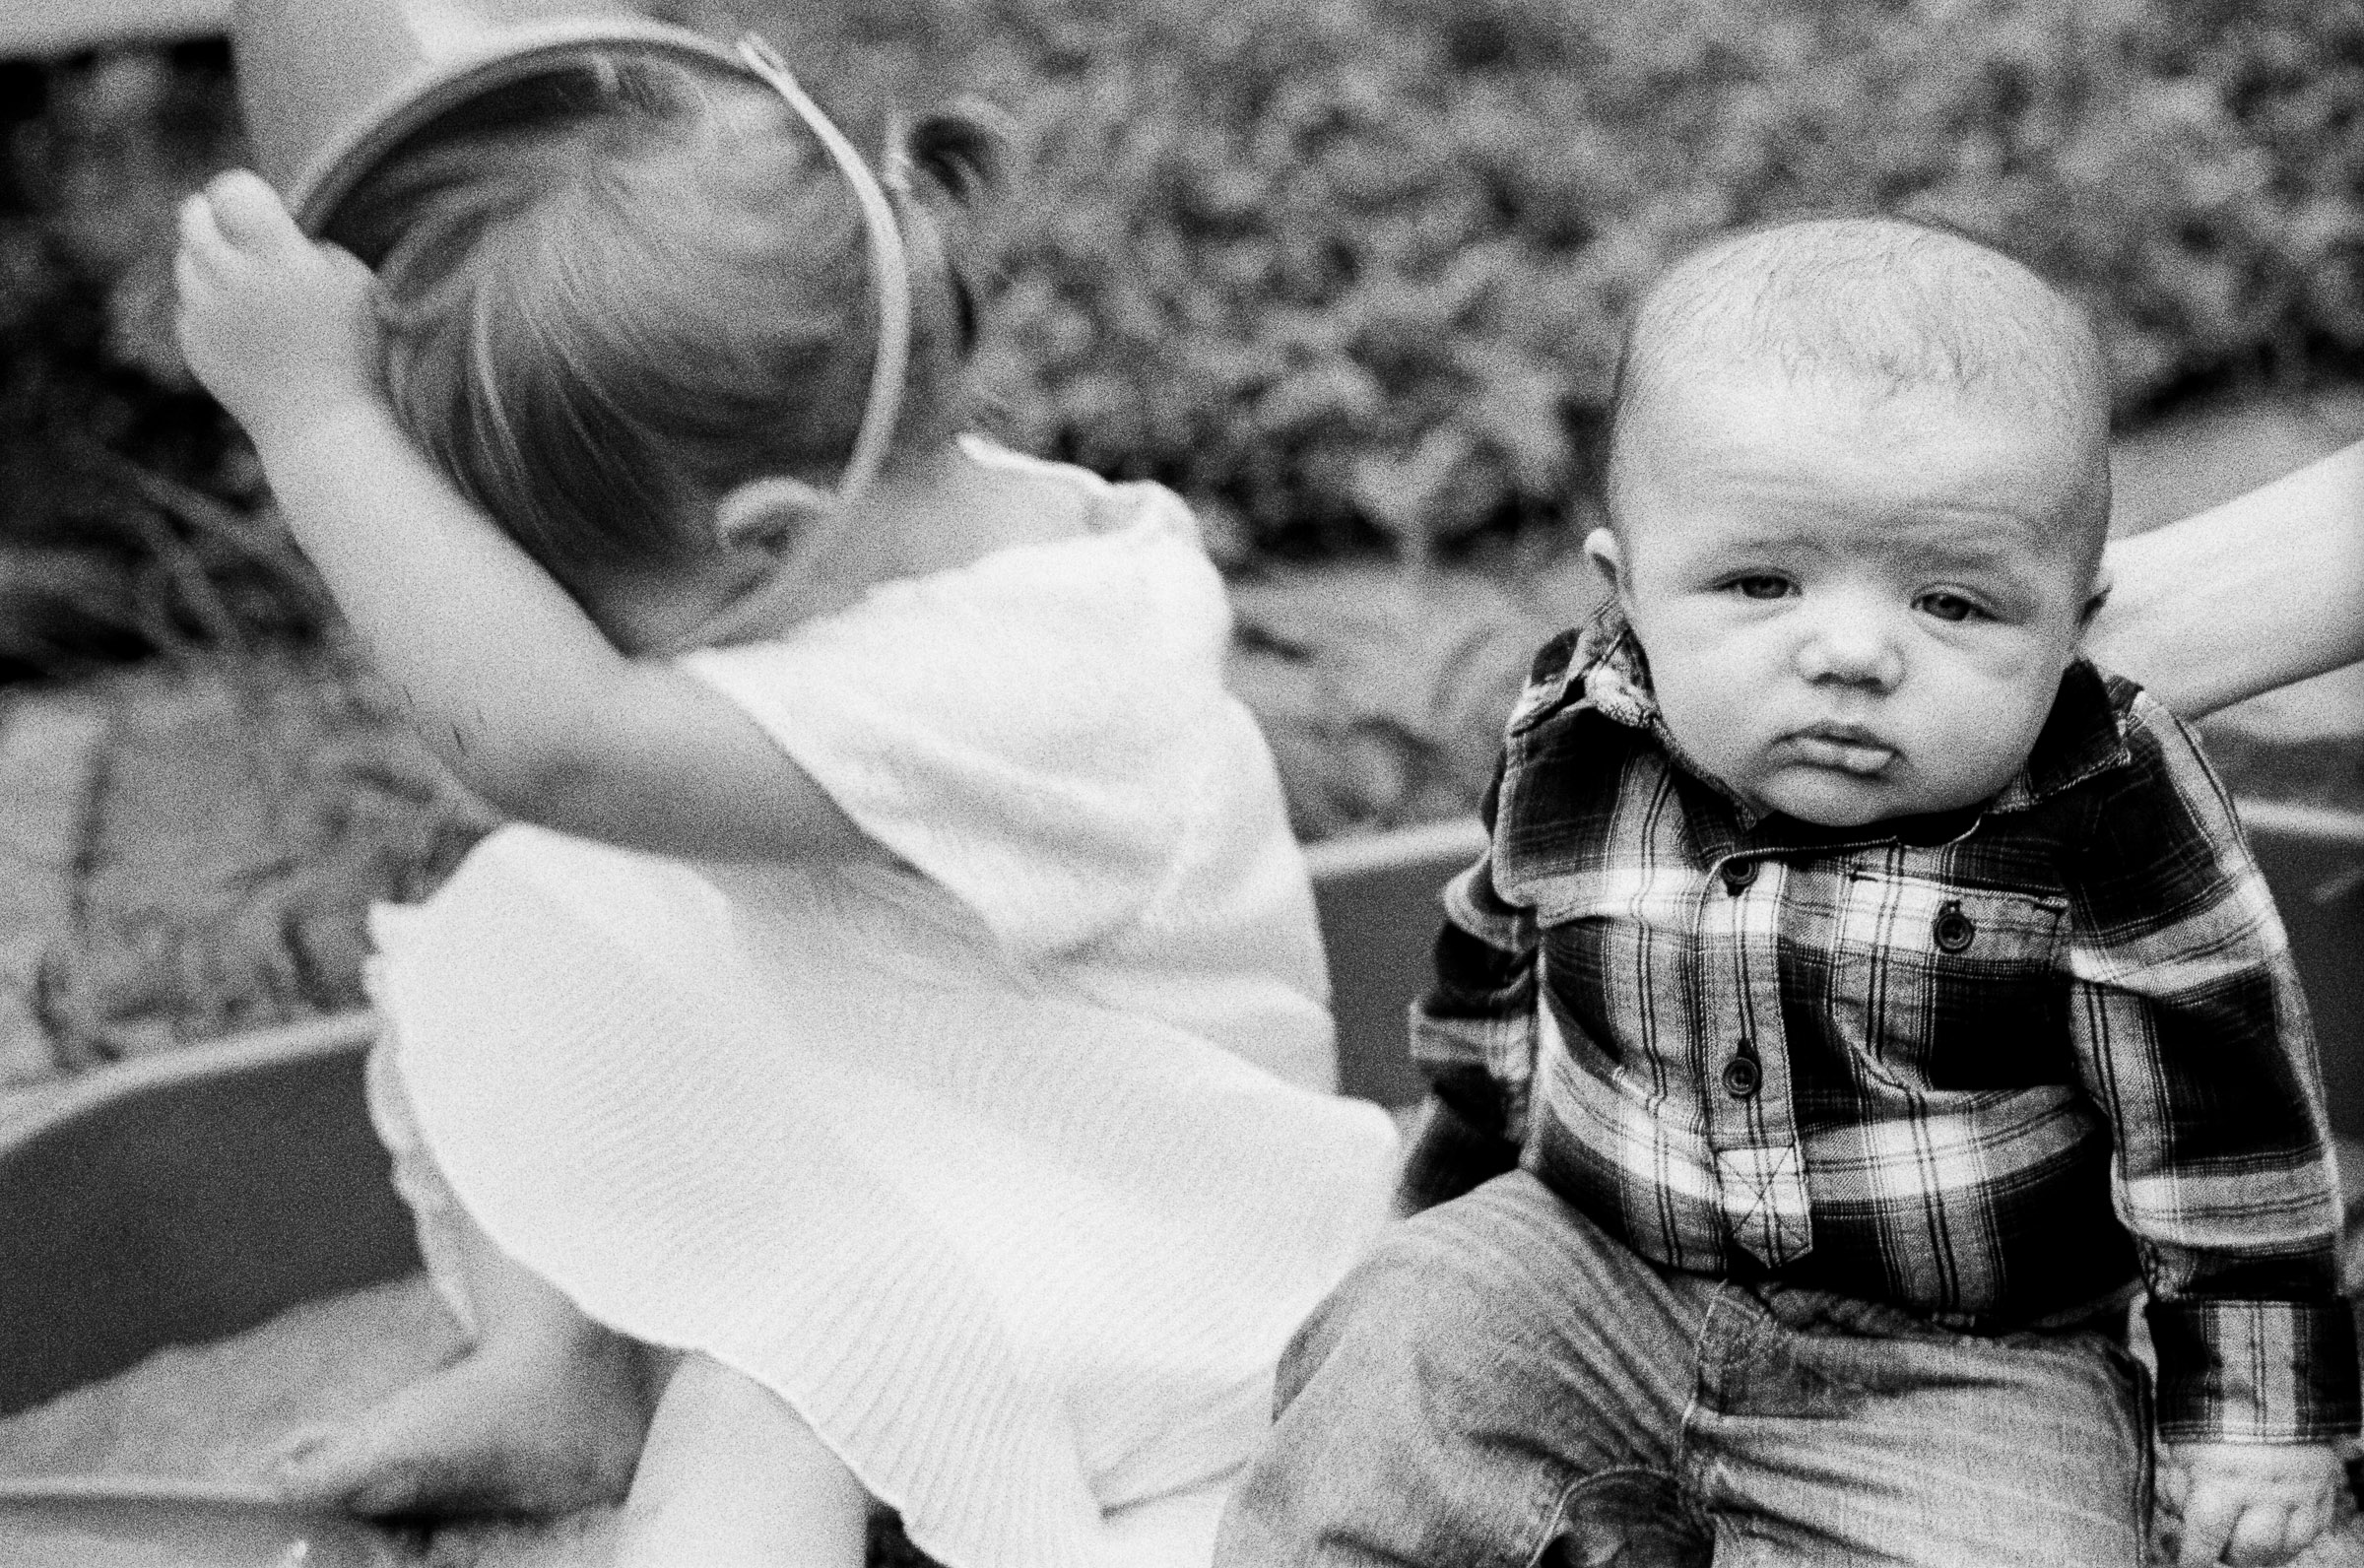 Murphy_family_Aug2012_by_Lomanno_0010.jpg